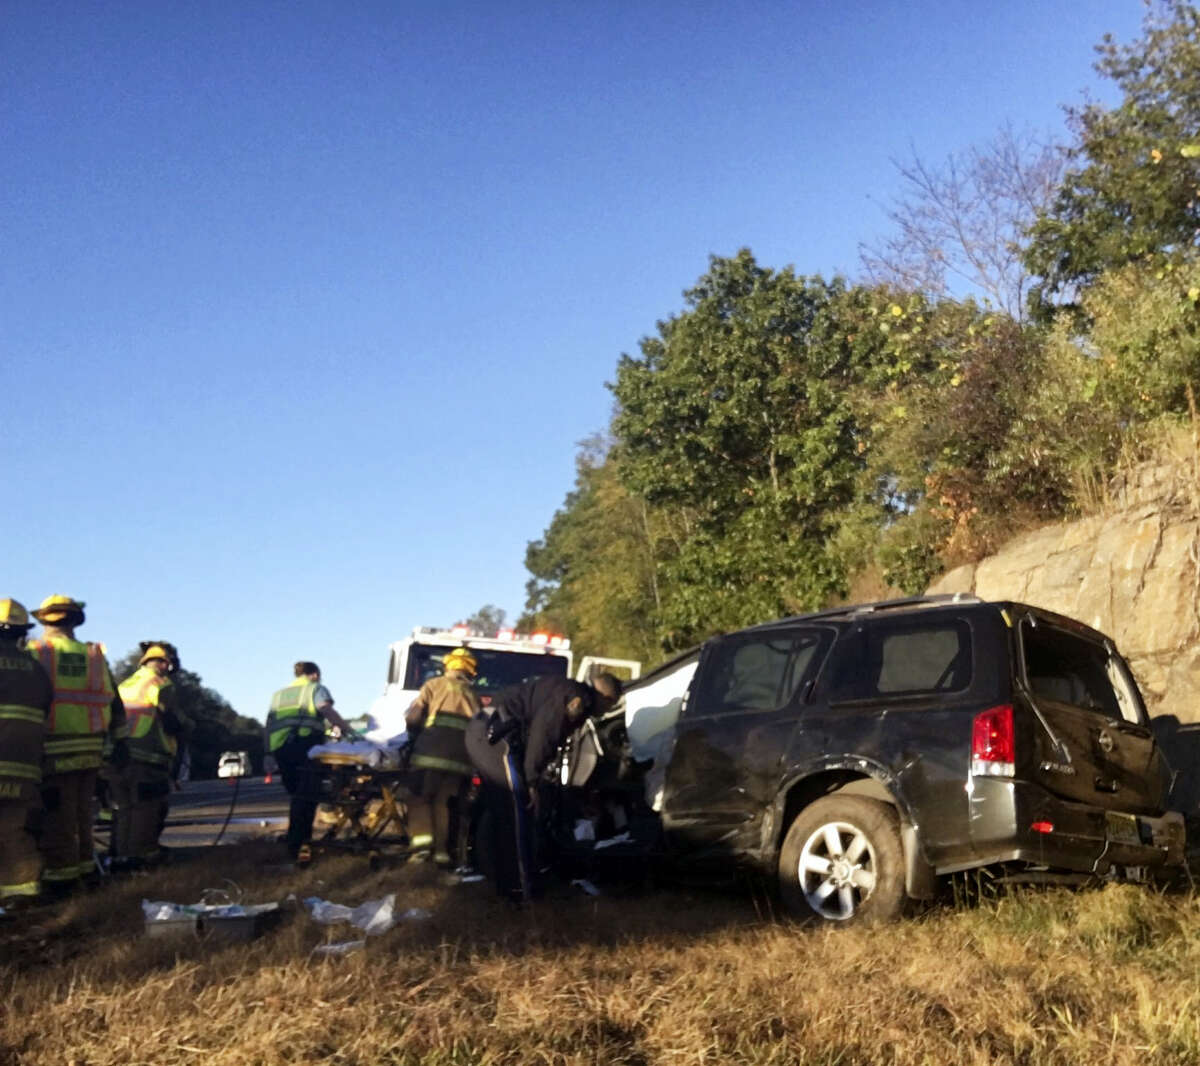 State police and emergency crews responded to a rollover crash Friday morning on Route 8 southbound in Shelton. State police said the crash involved non-life threatening injuries.